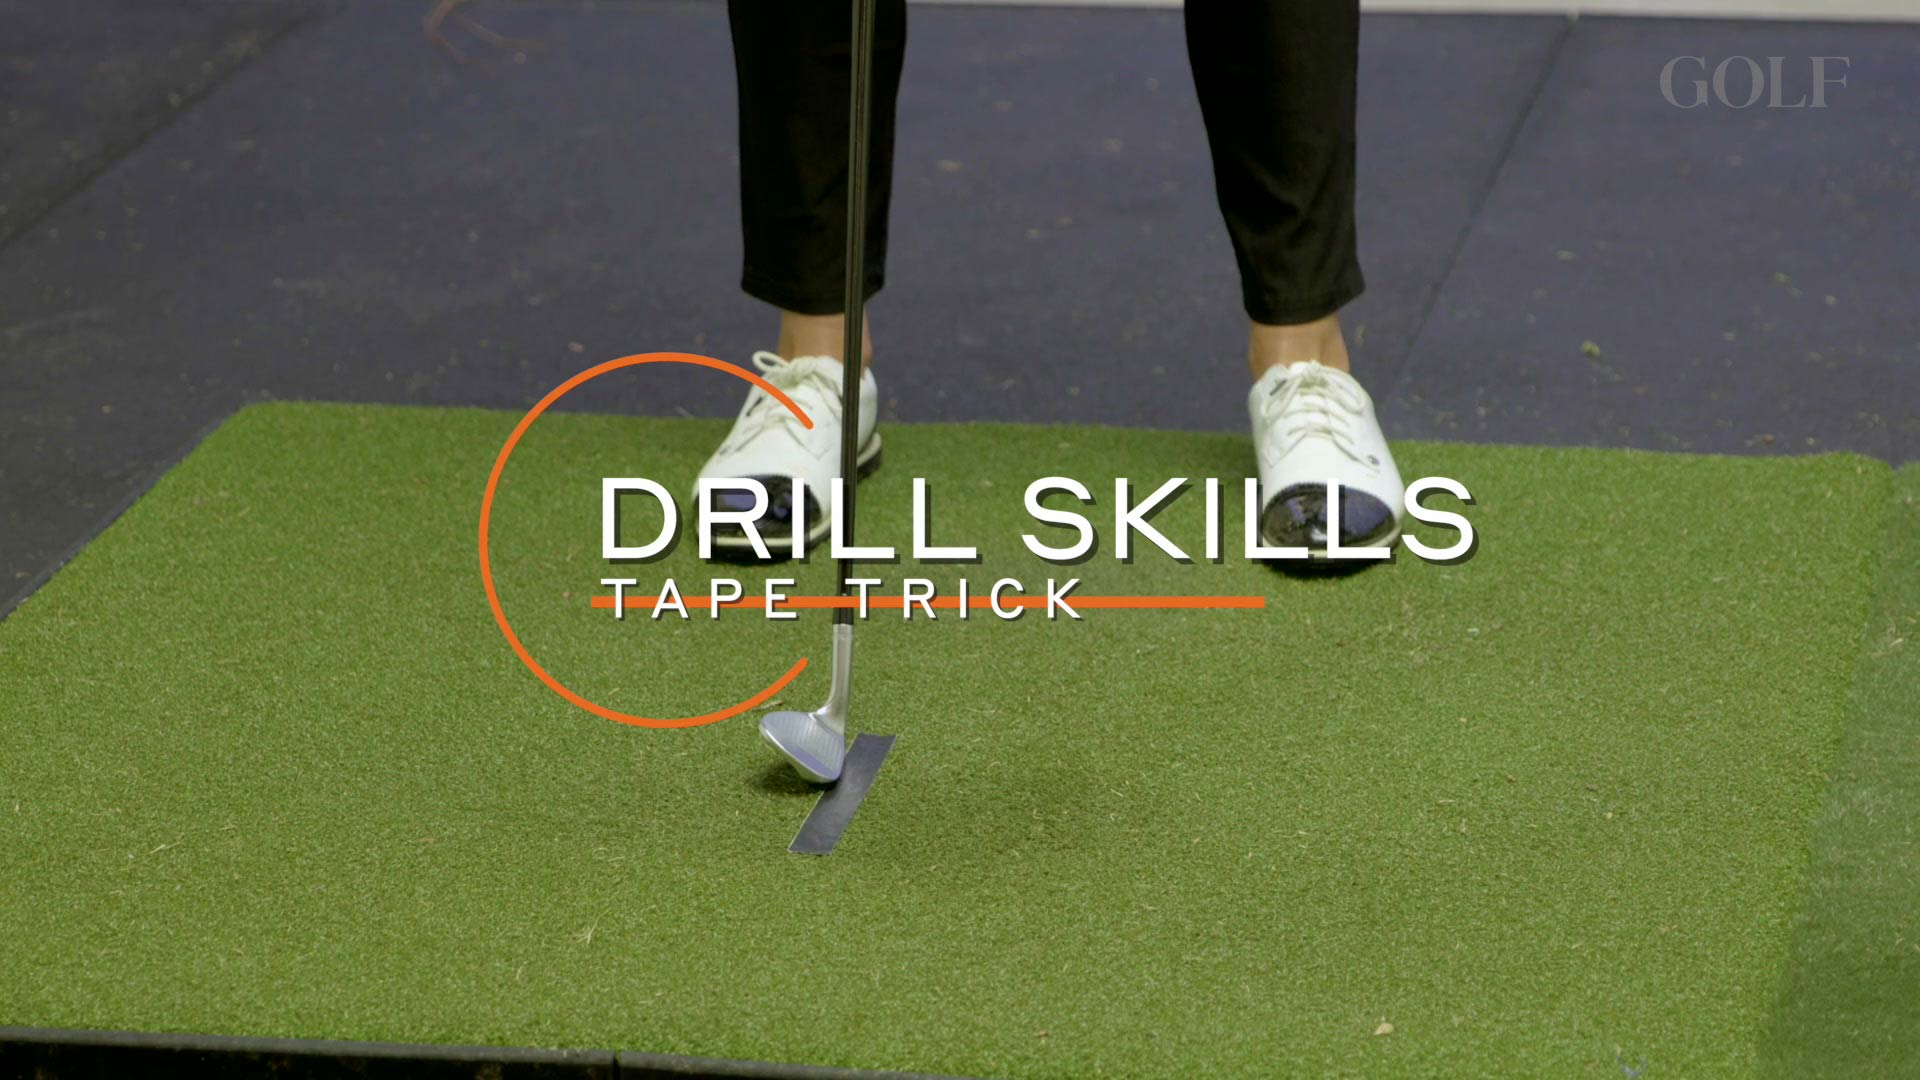 Drill Skills: Tape Trick to improve the low point of your swing